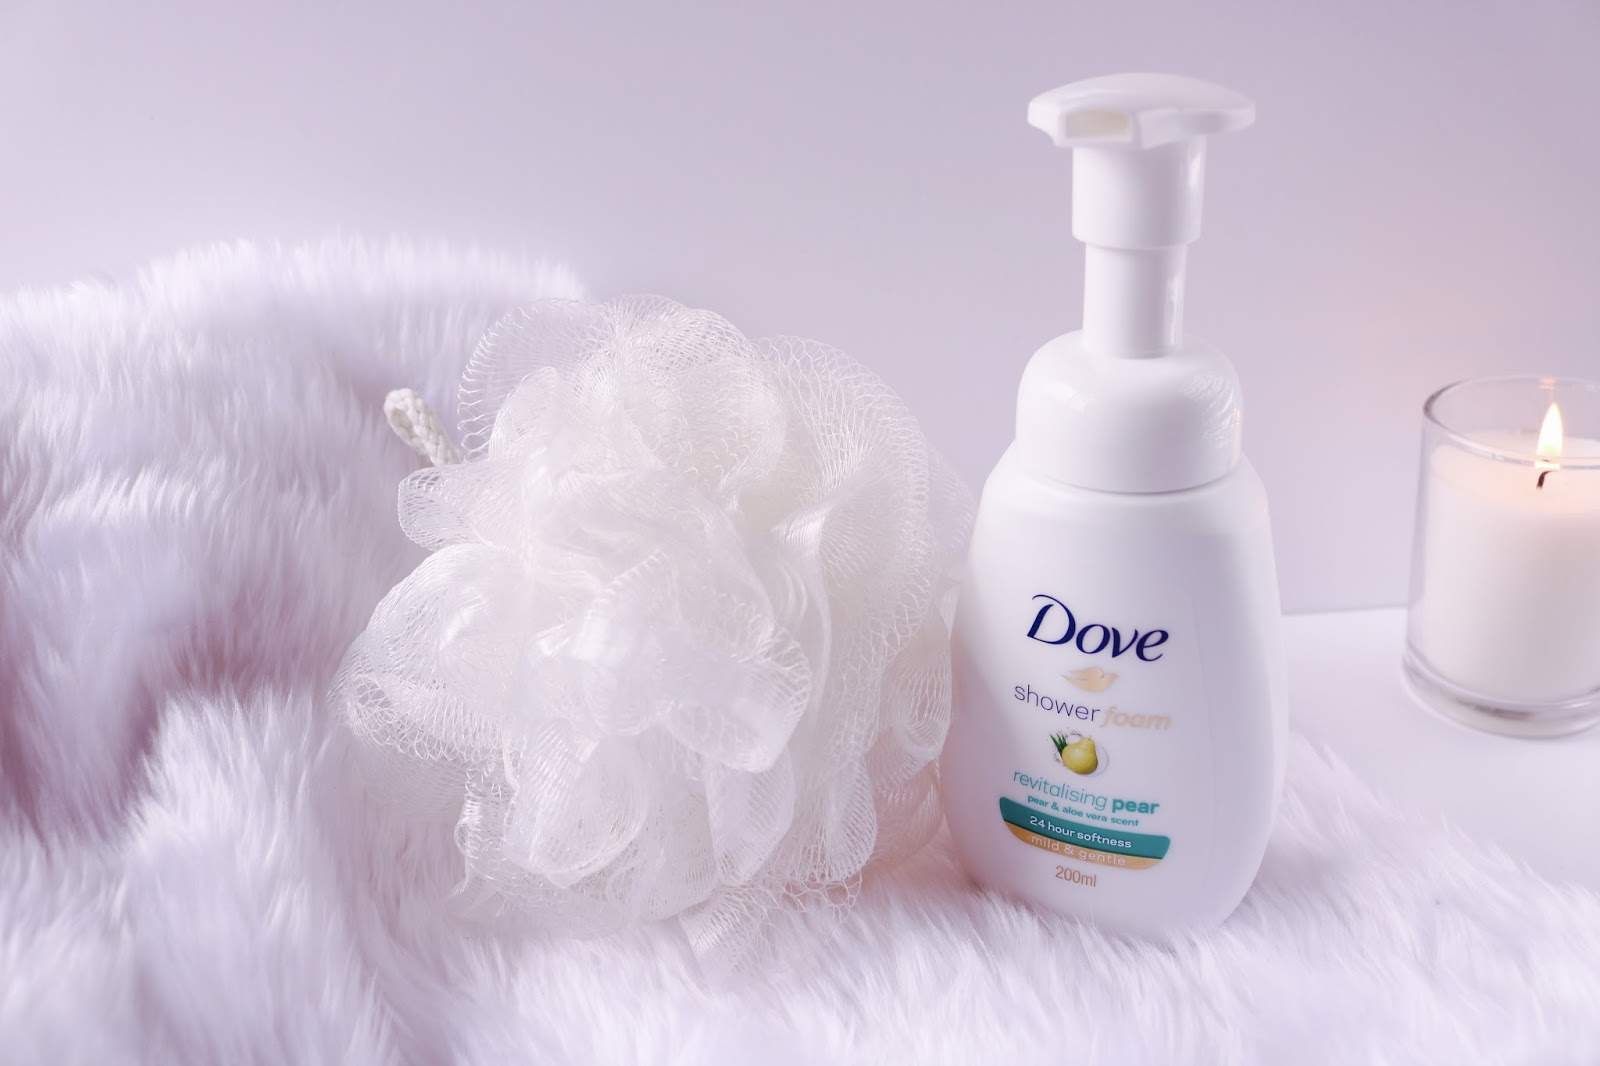 Dove Shower Foam Printable Coupon - Printable Coupons And Deals - Free Dove Soap Coupons Printable